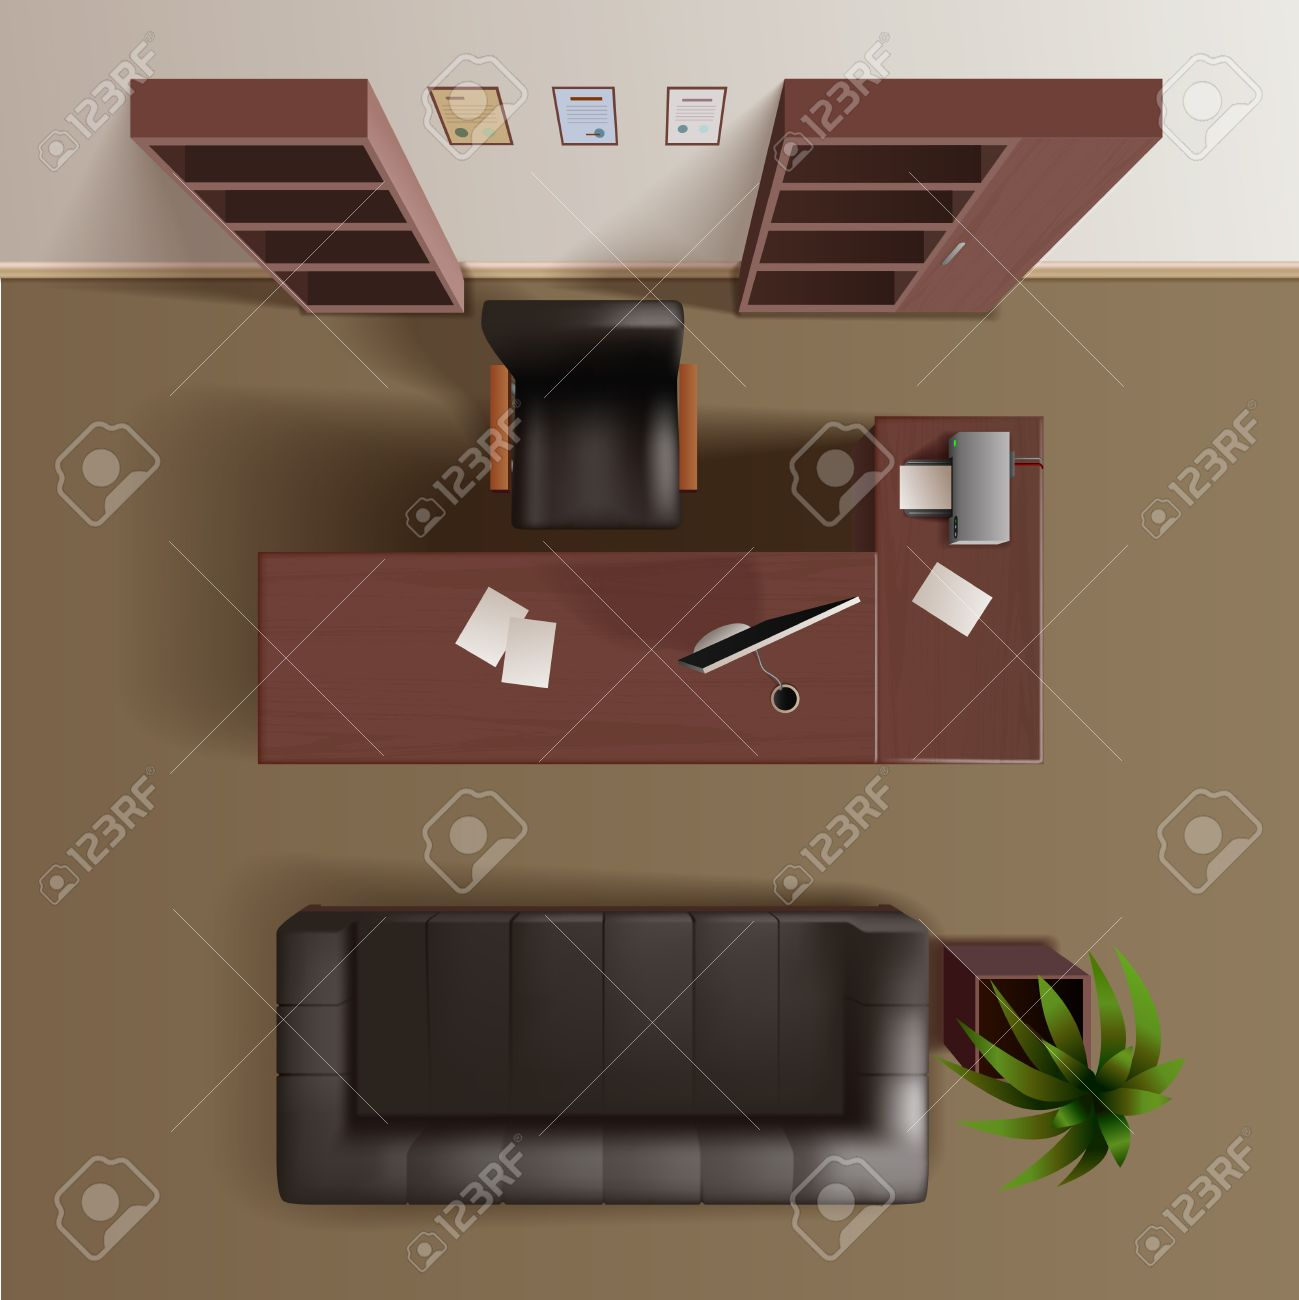 Office furniture top view - Office Work Room With Wooden Bookshelves Desk Computer Plant And Leather Sofa Top View Realistic Vector